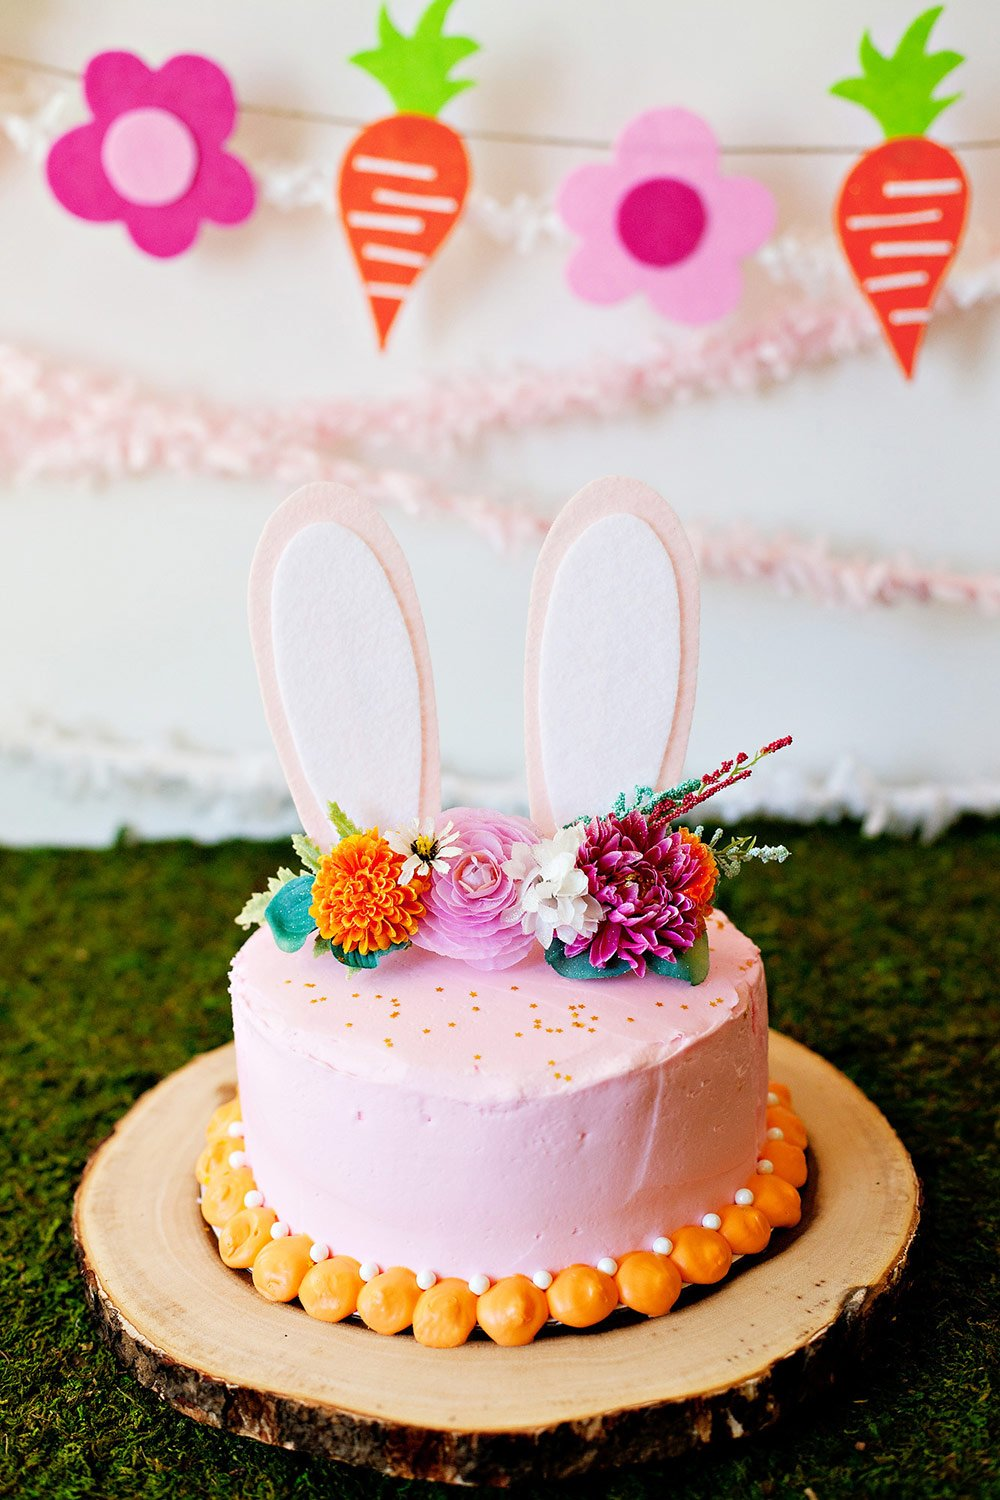 https://www.hwtm.com/wp-content/uploads/2019/11/diy-easter-bunny-cake-topper.jpg